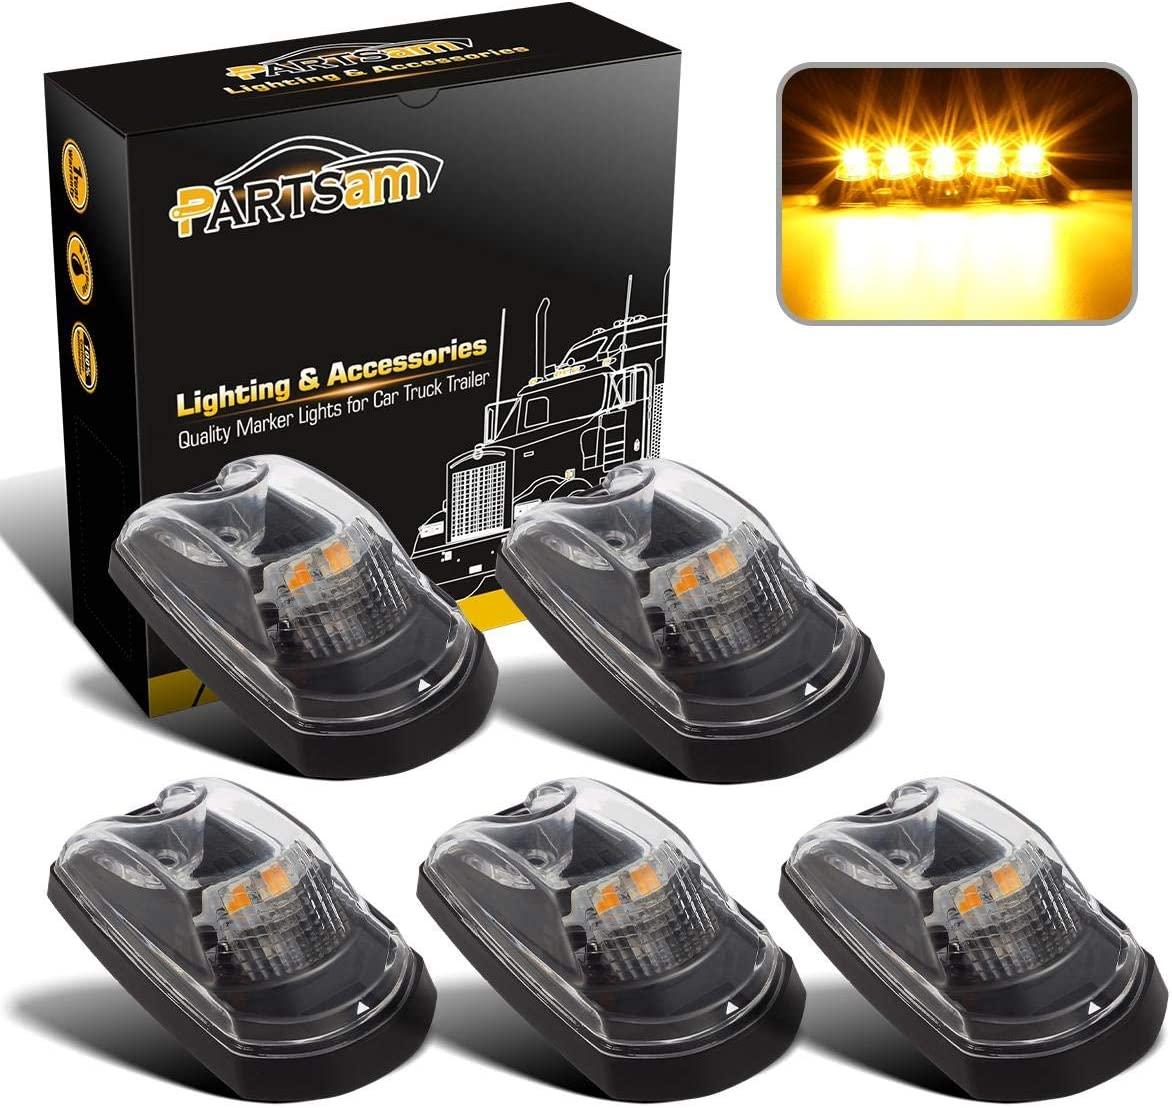 Partsam Clear Lens Cab Marker Top Lights Running Roof Amber depot Lamp Fixed price for sale